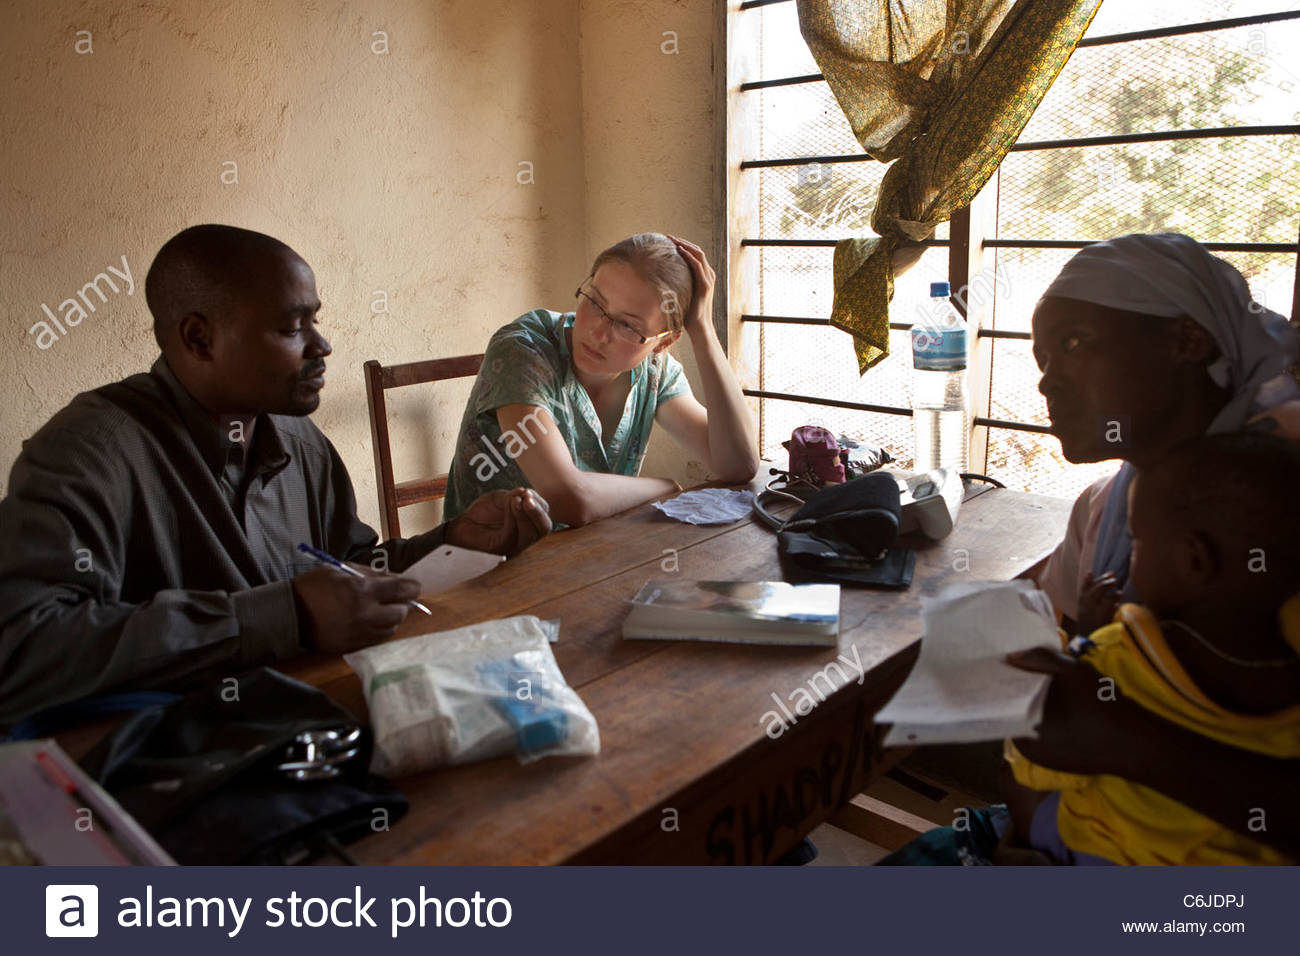 A western medical student consults with patients at a medical dispensary Stock Photo